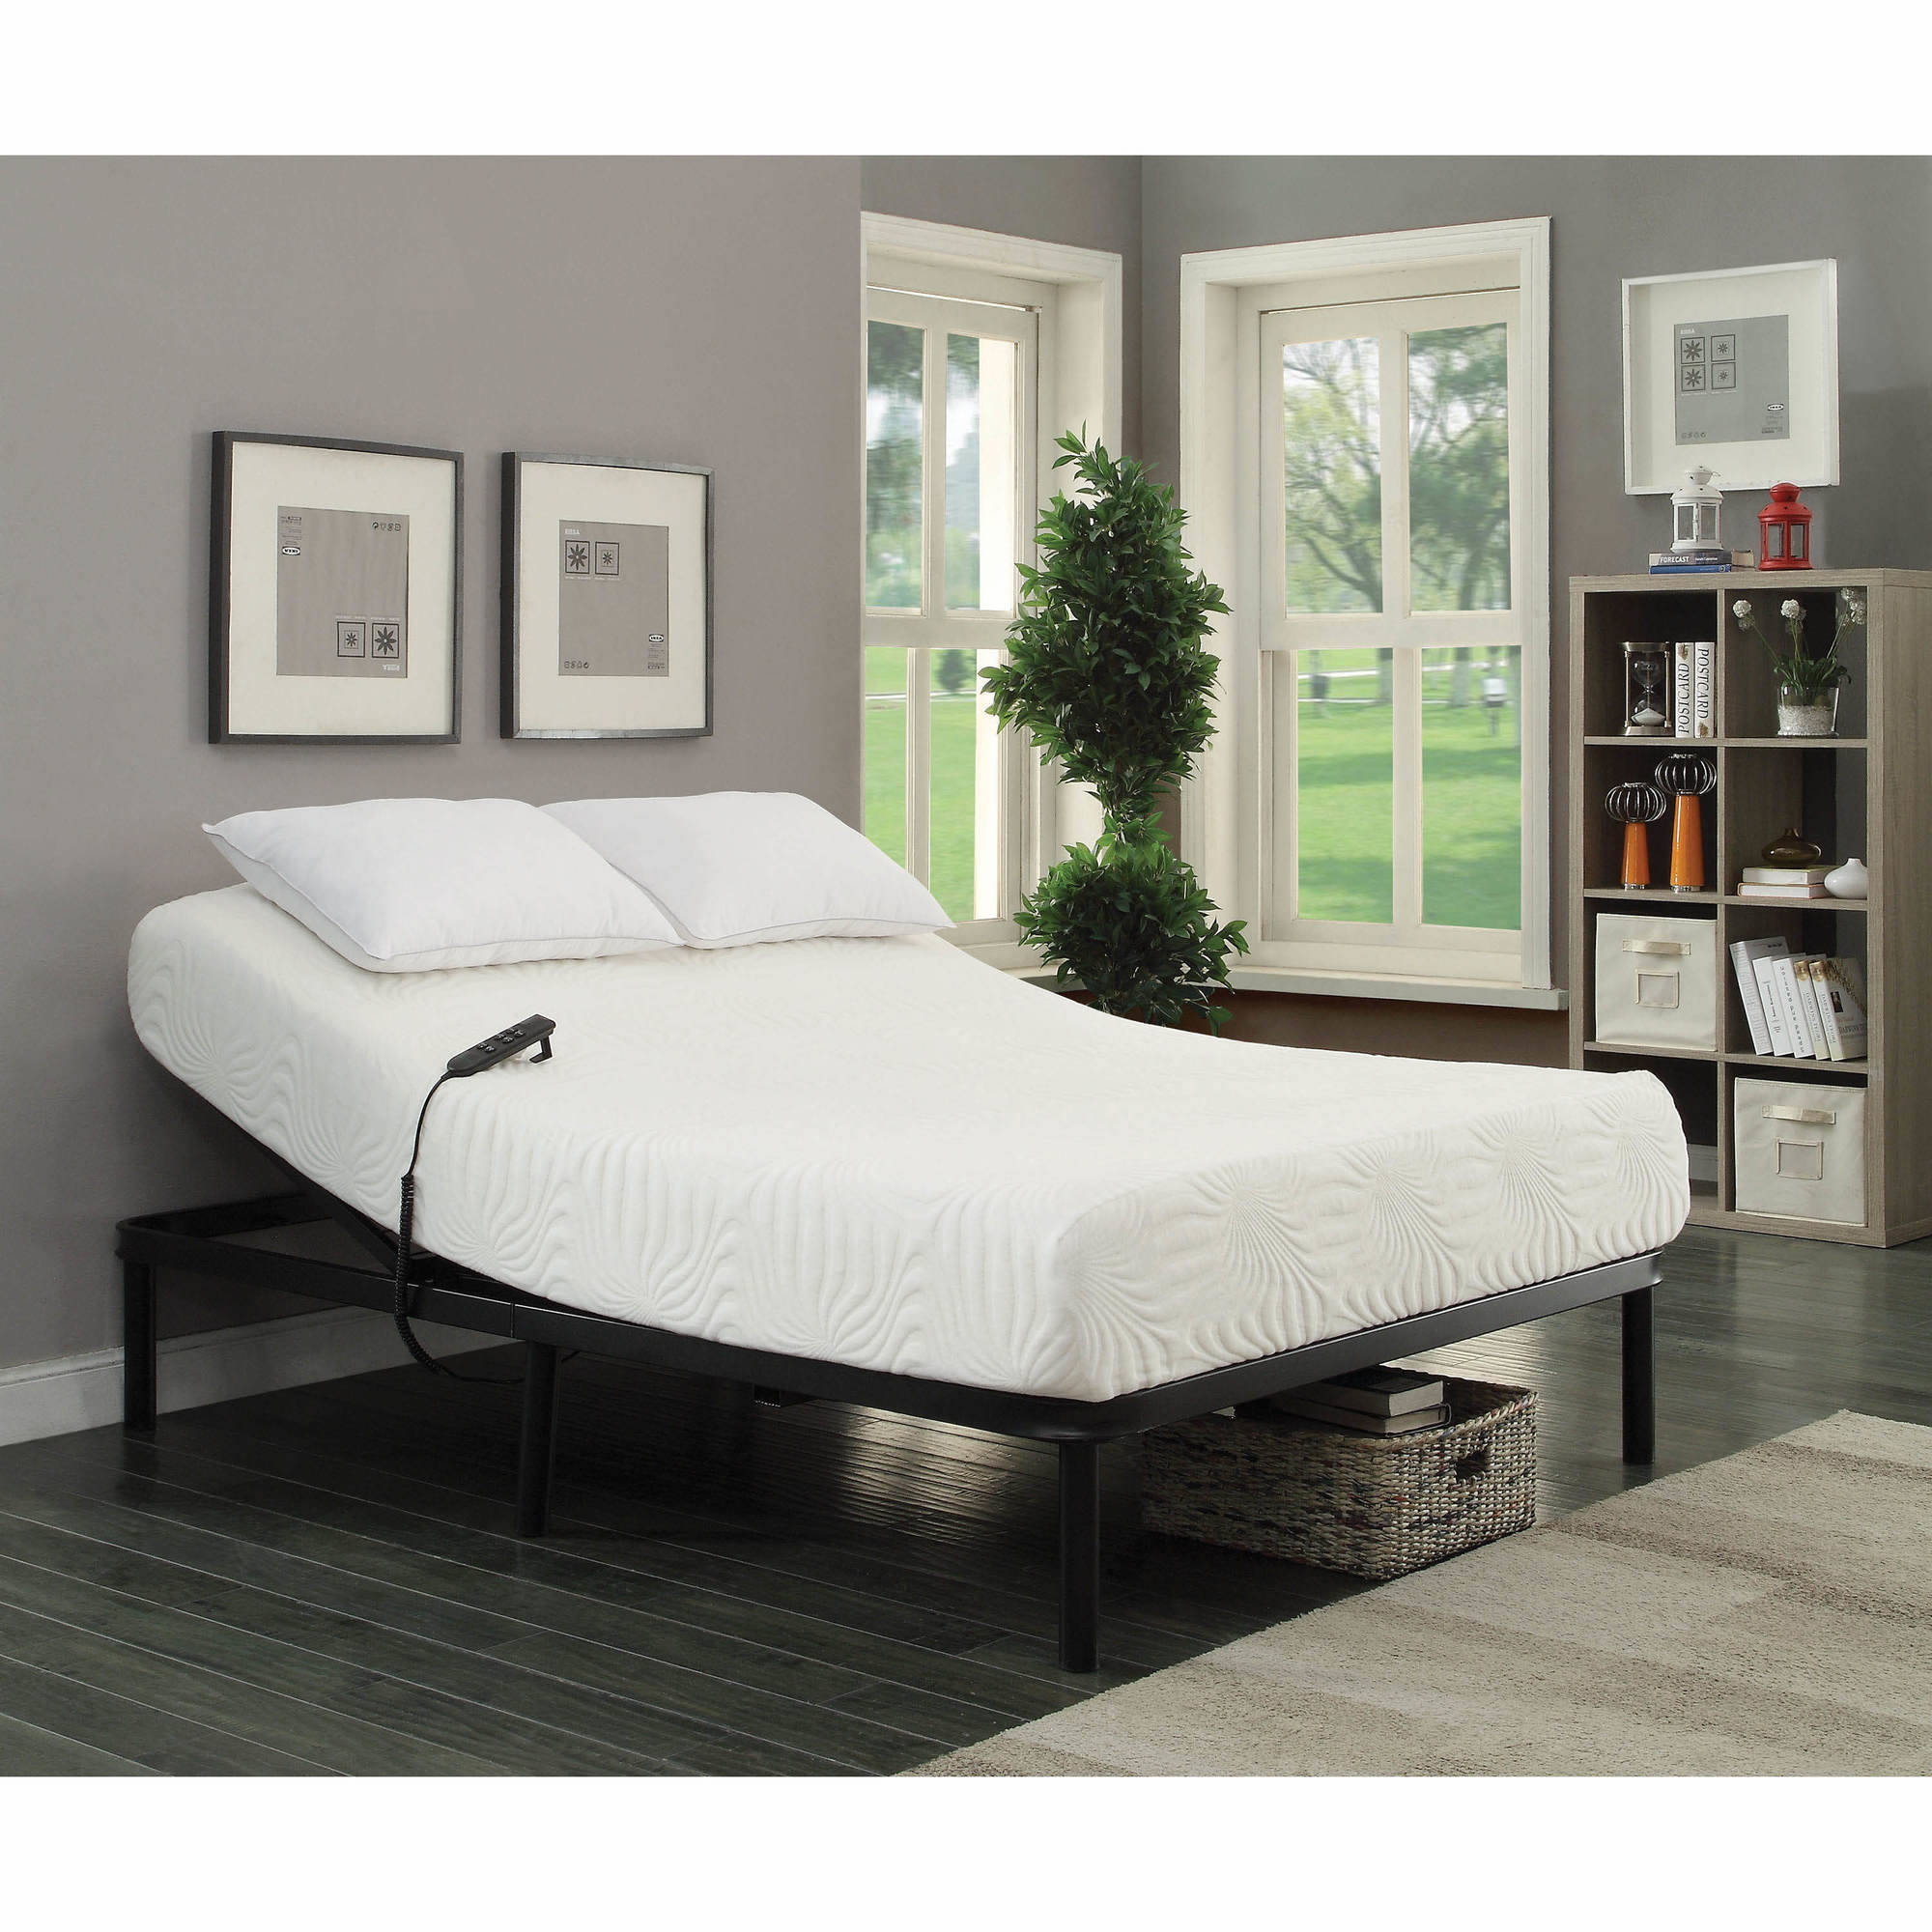 Coaster Company Stanhope Adjustable Bed Base Twin Long Adjustable Bed Base